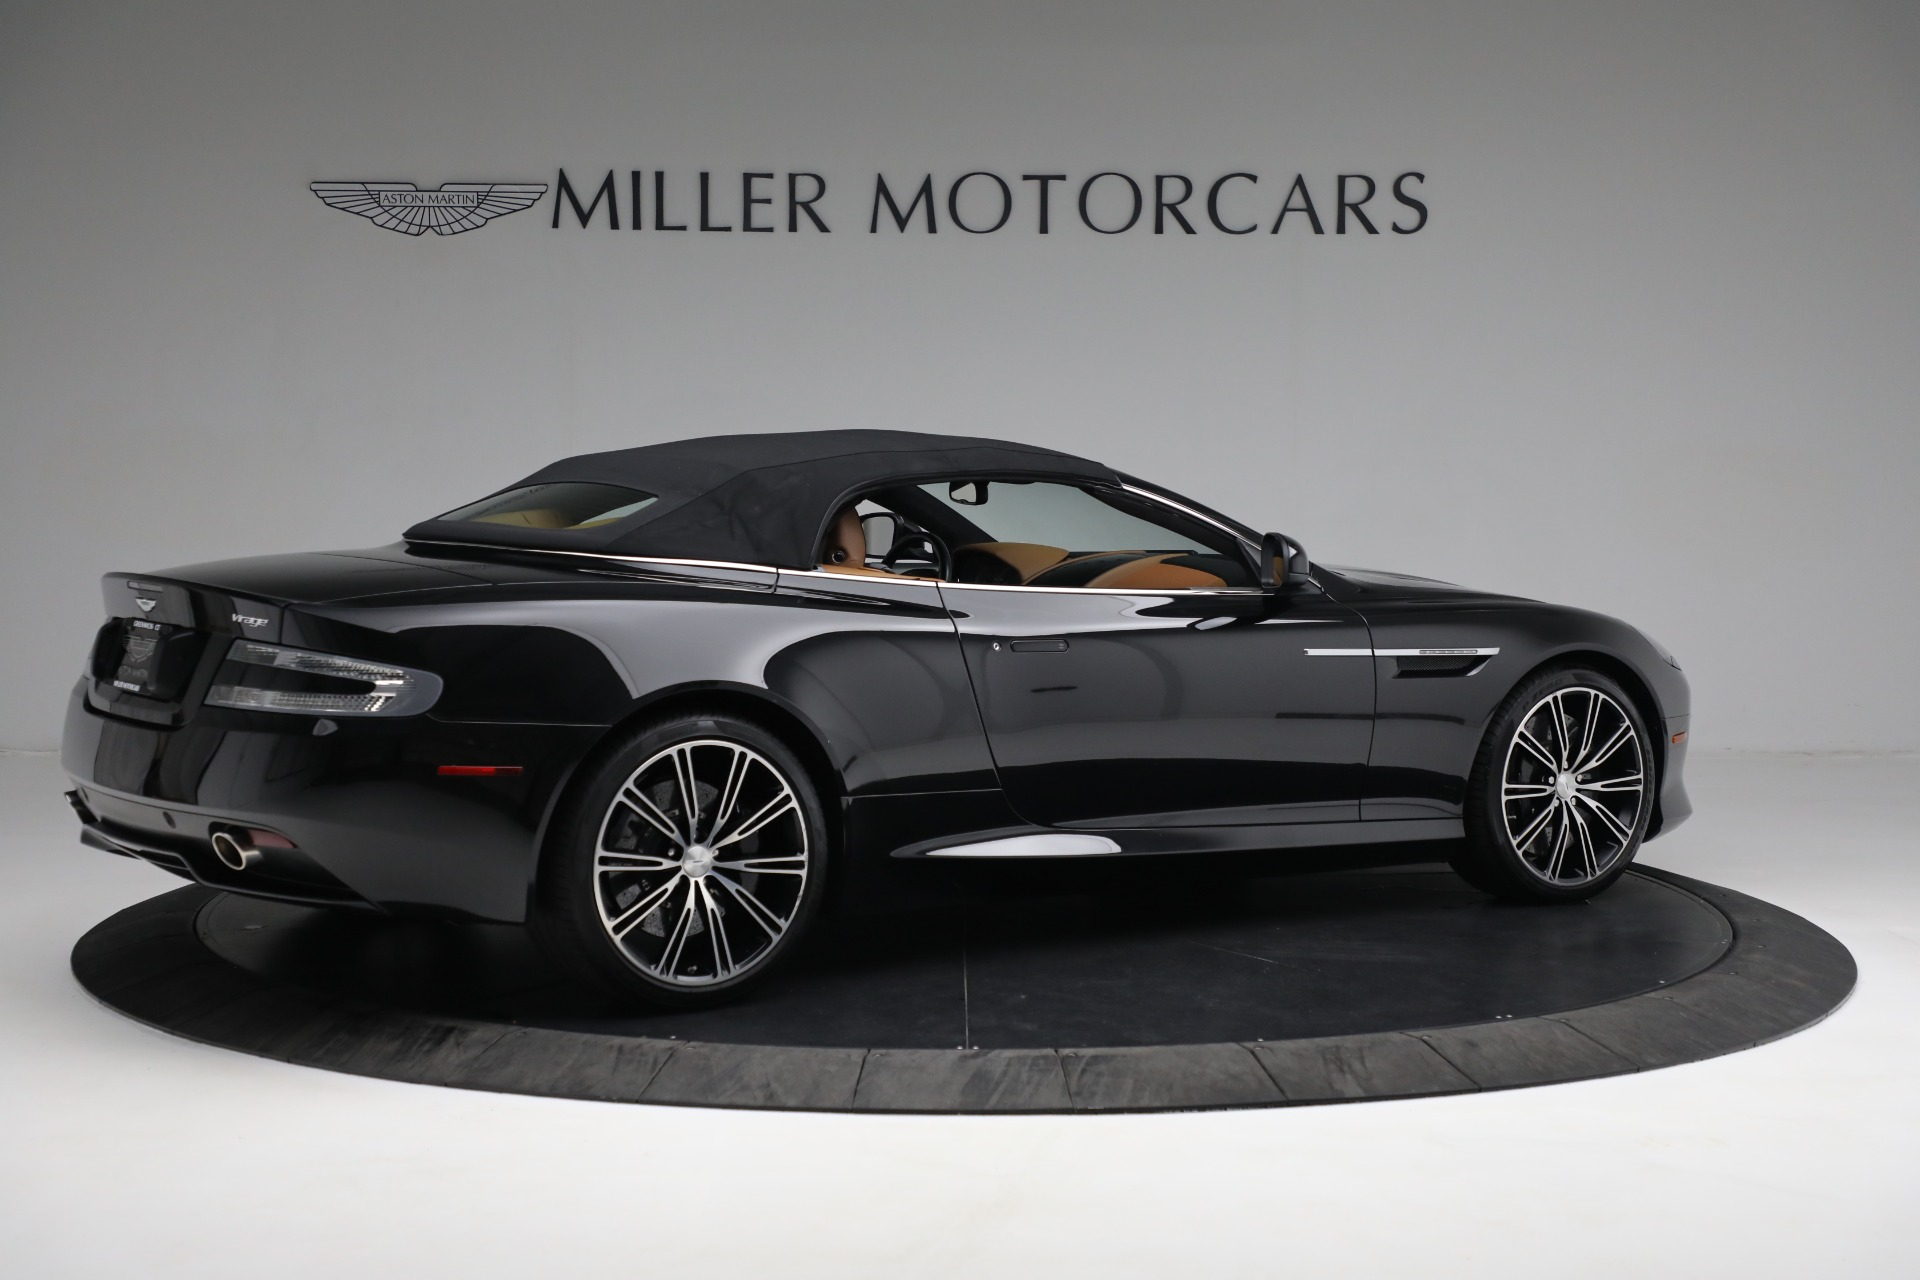 Used 2012 Aston Martin Virage Volante For Sale In Westport, CT 2244_p21